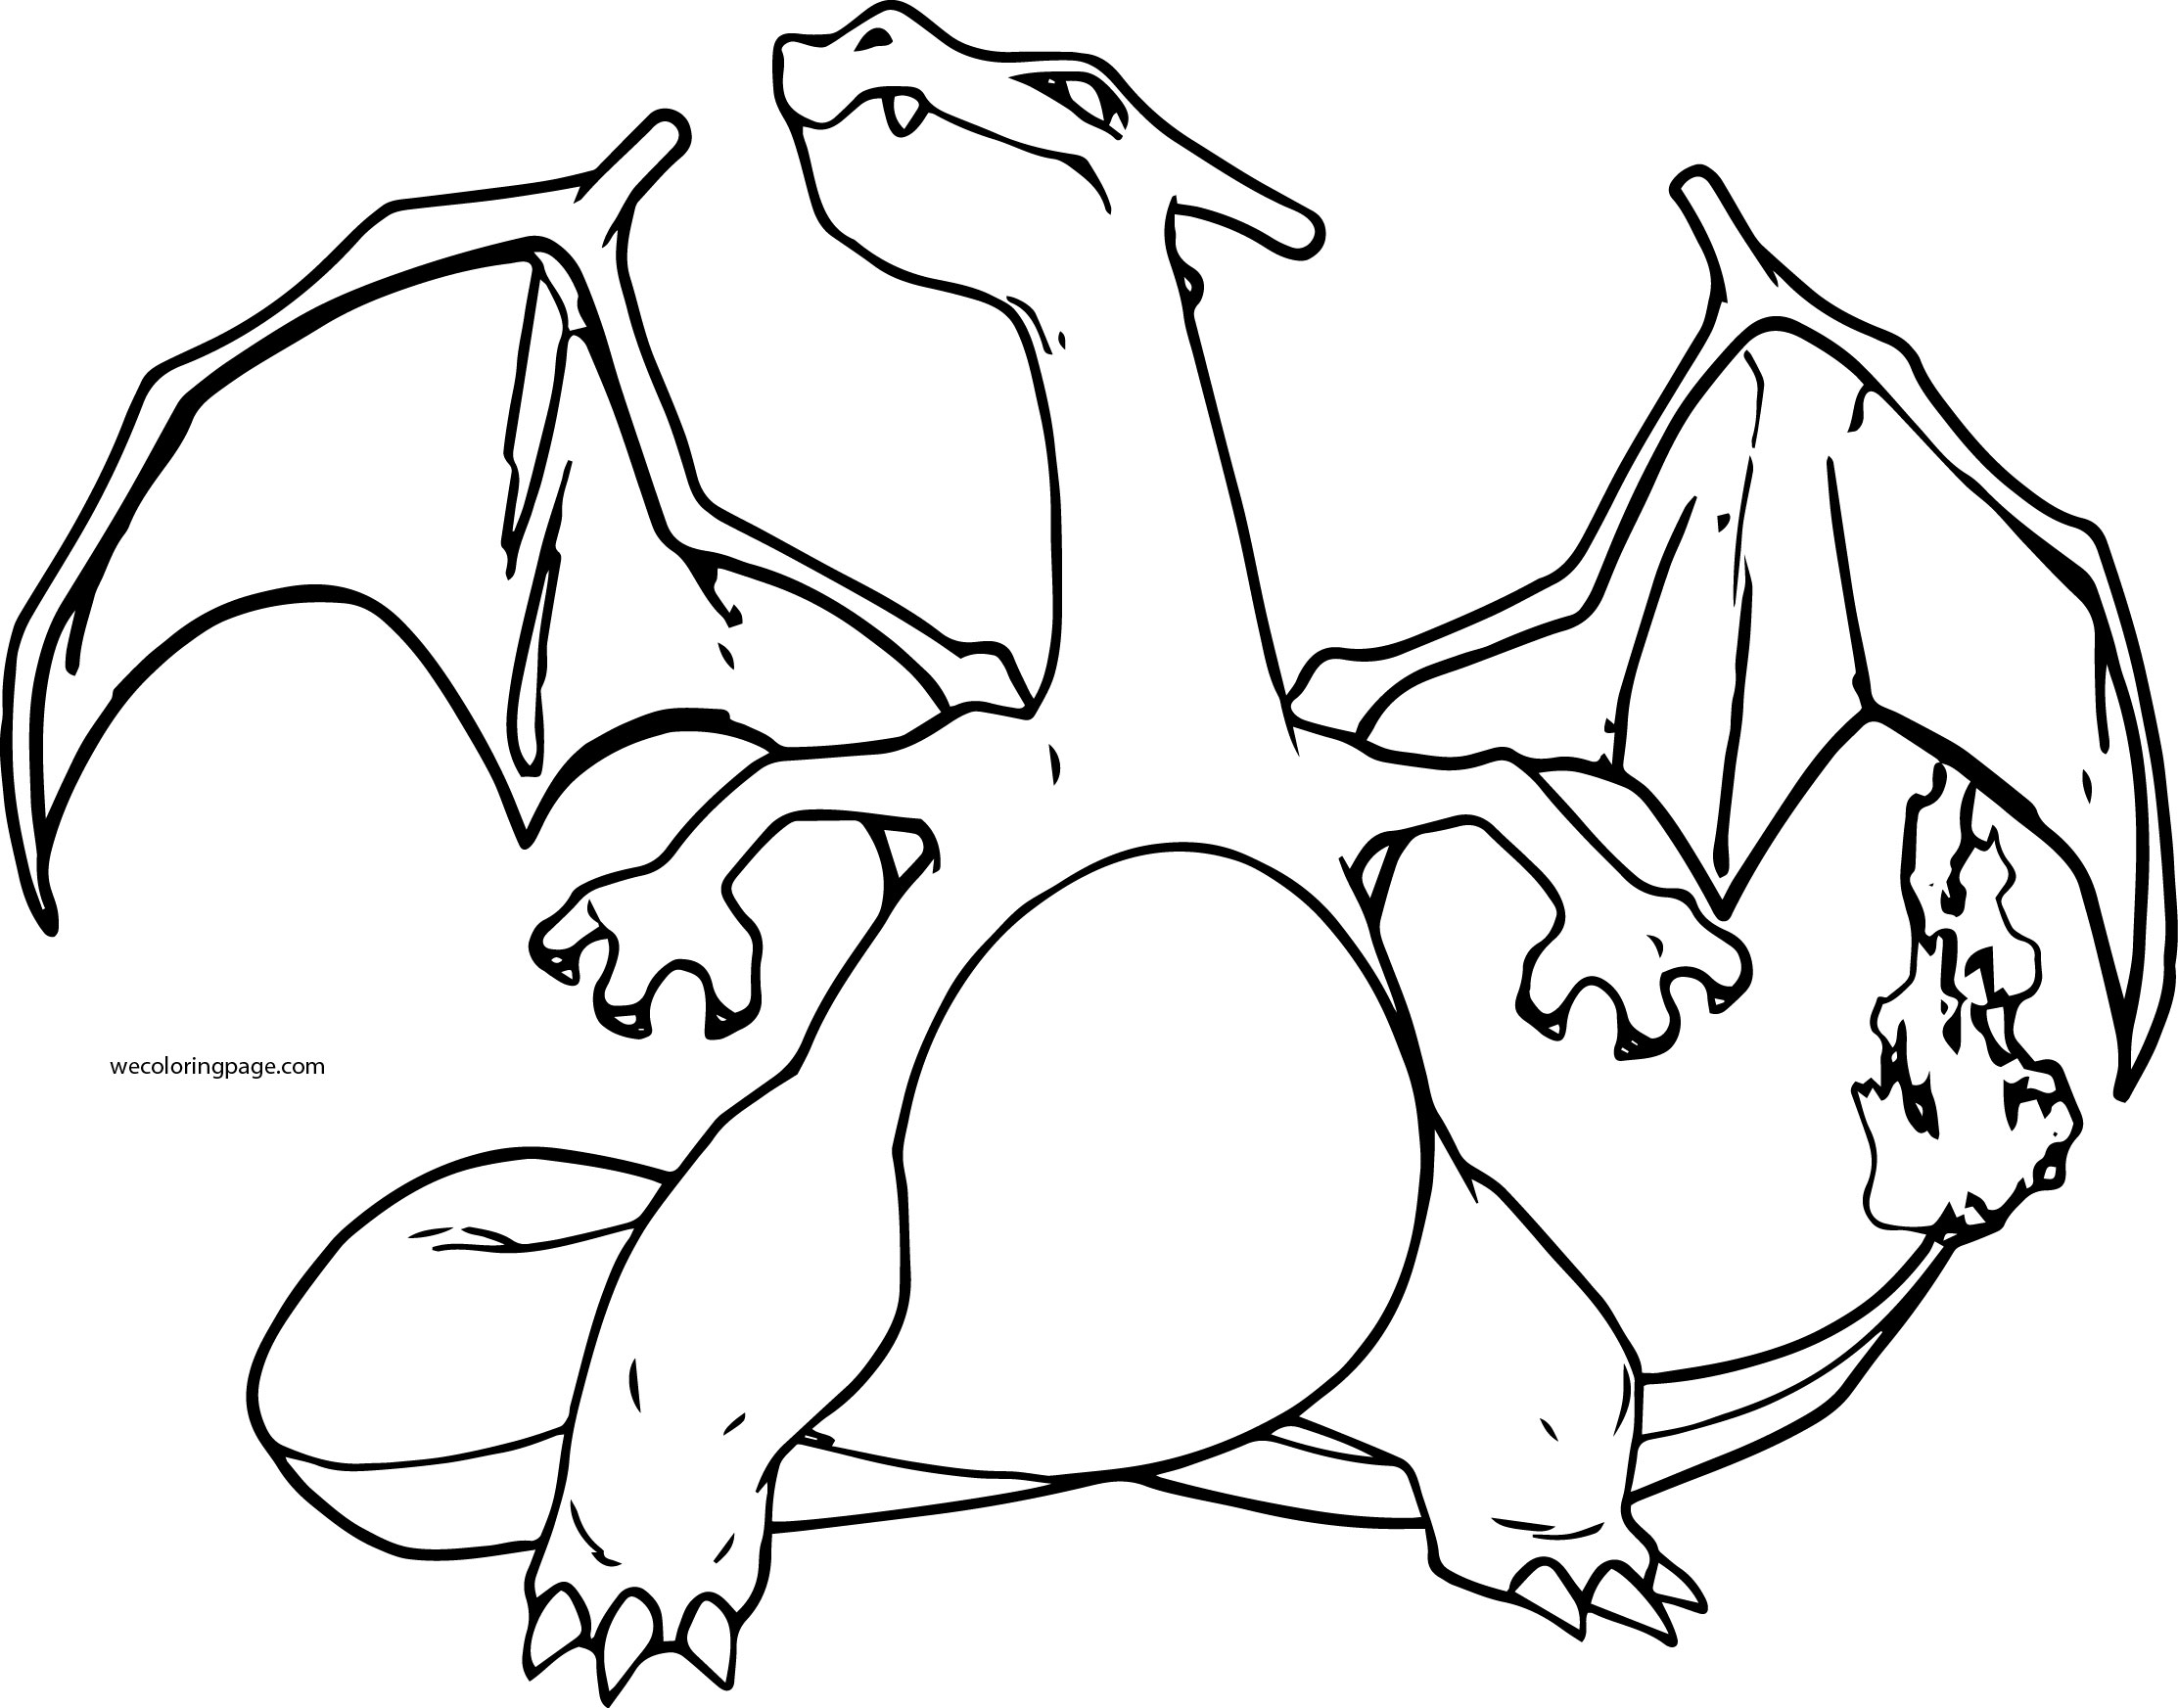 coloring pokemon charizard charizard coloring pages to download and print for free pokemon coloring charizard 1 1